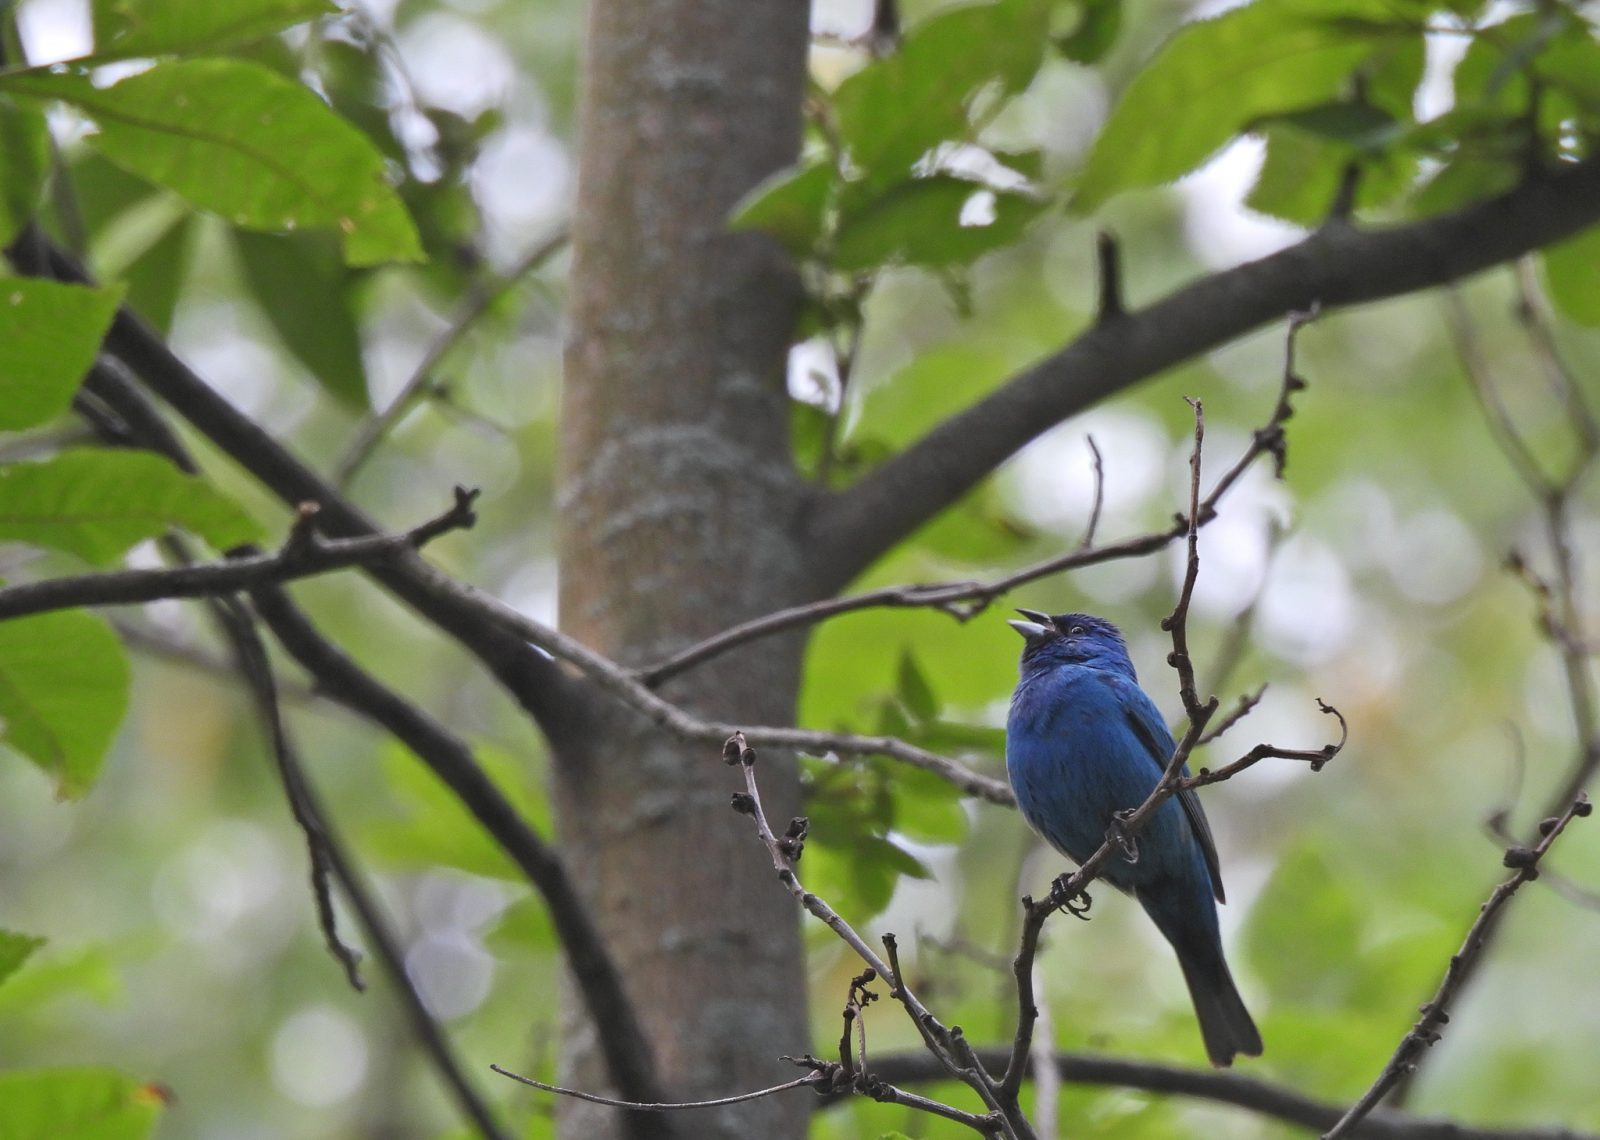 Singing the Blues in the Green Treetop